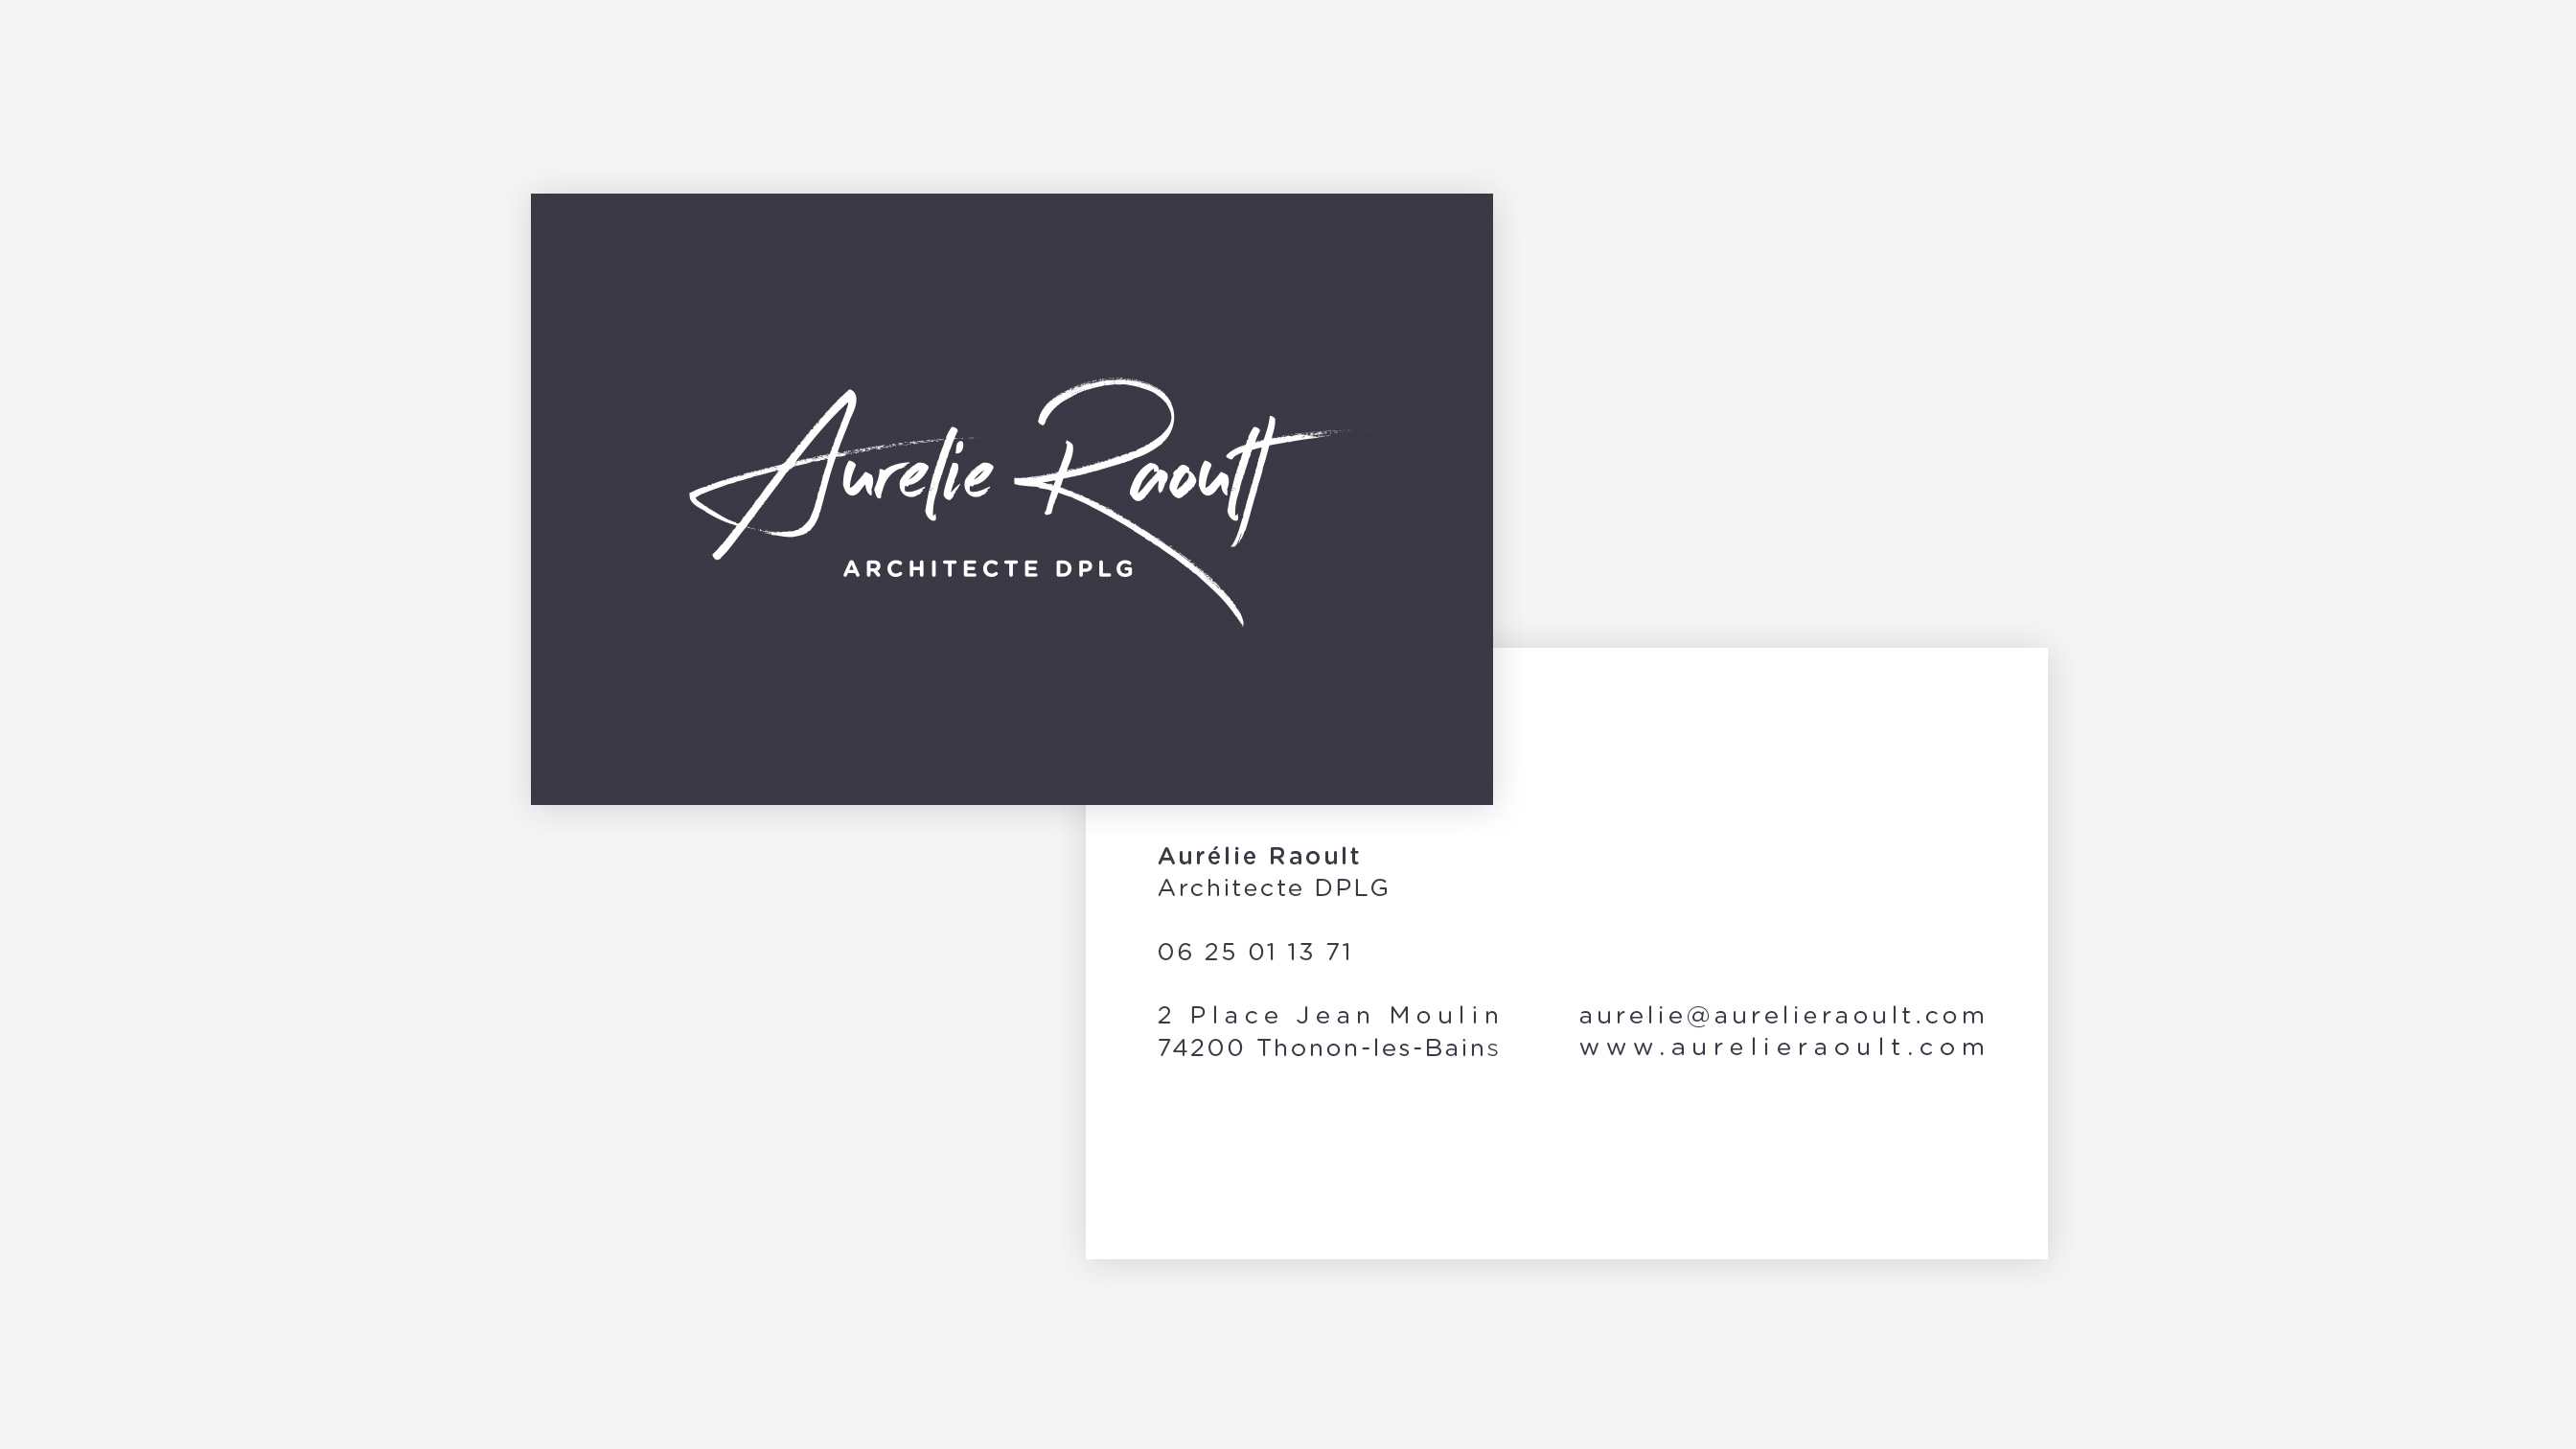 02-aurelie-raoult-pikteo-webdesign-graphic-design-freelance-paris-bruxelles-londres